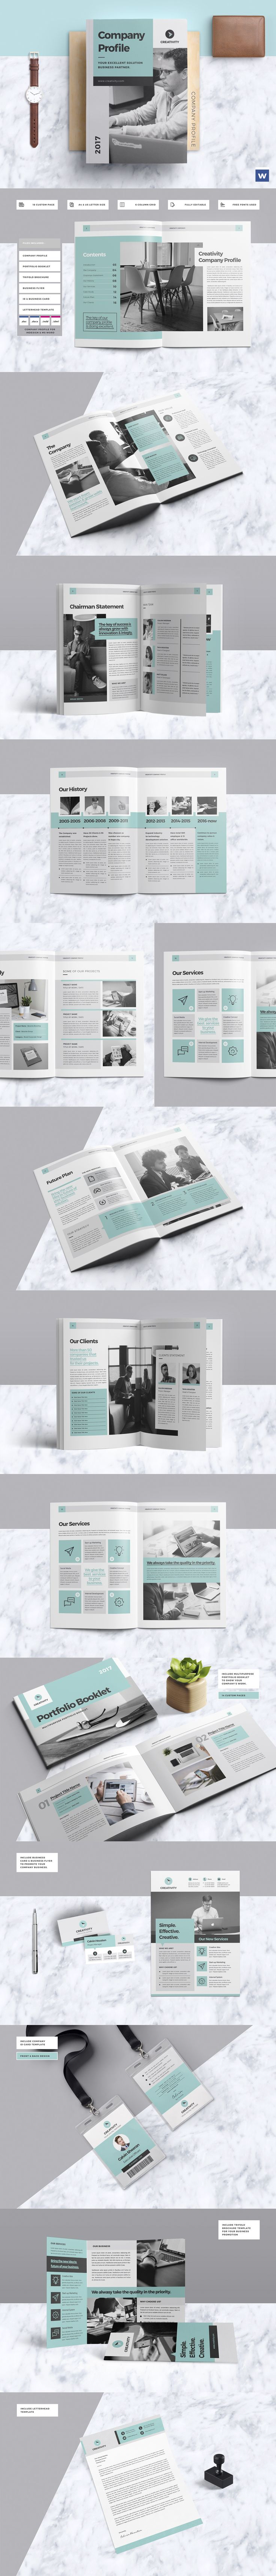 Clean & Professional Company Profile with include Portfolio Booklet, Trifold Brochure, & More